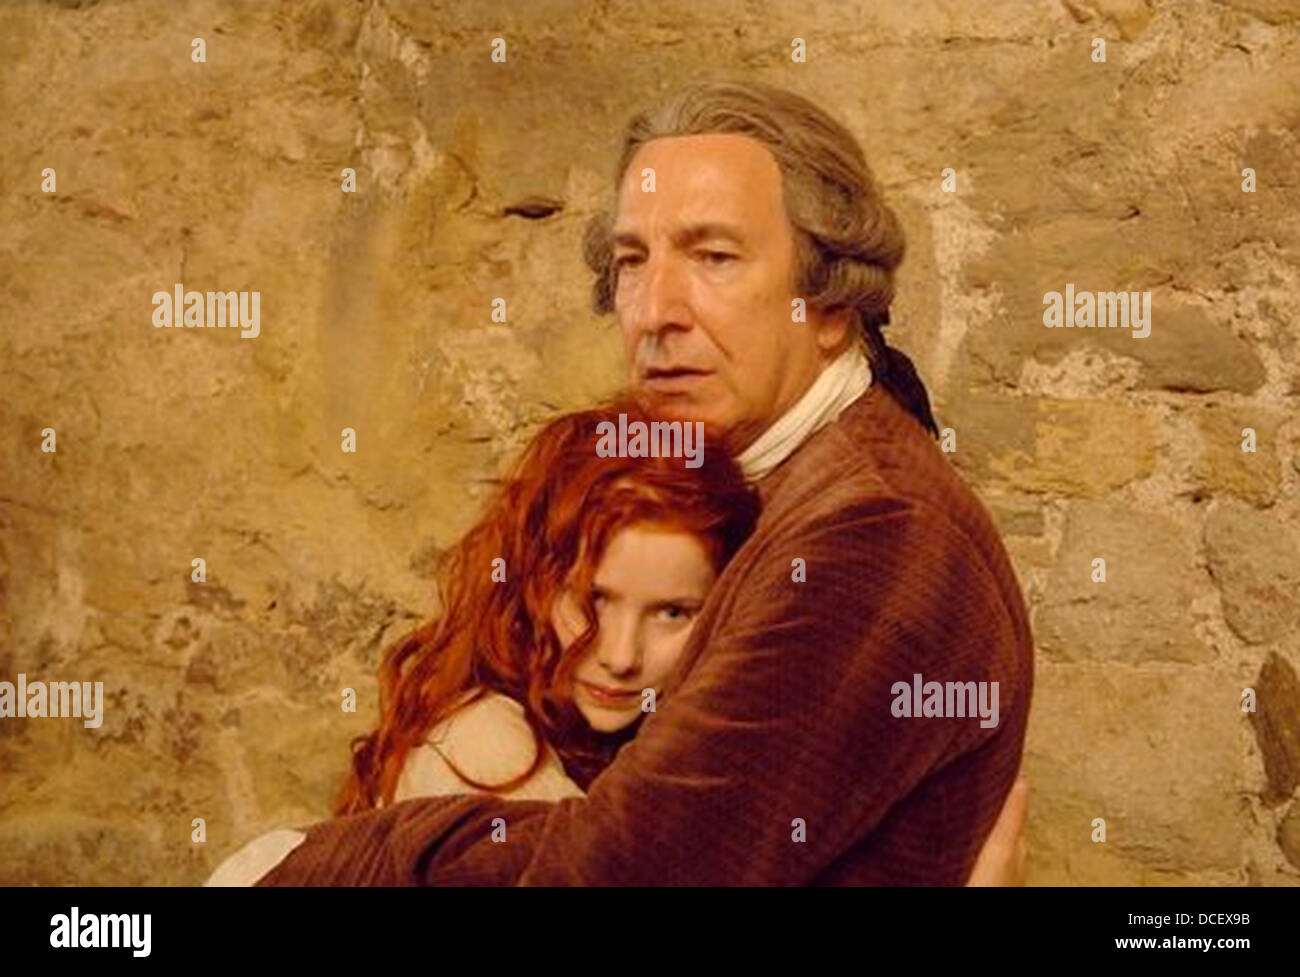 PERFUME: THE STORY OF A MURDERER 2006 Metropolitan film production with Rachel Hurd-Wood and Alan Rickman - Stock Image